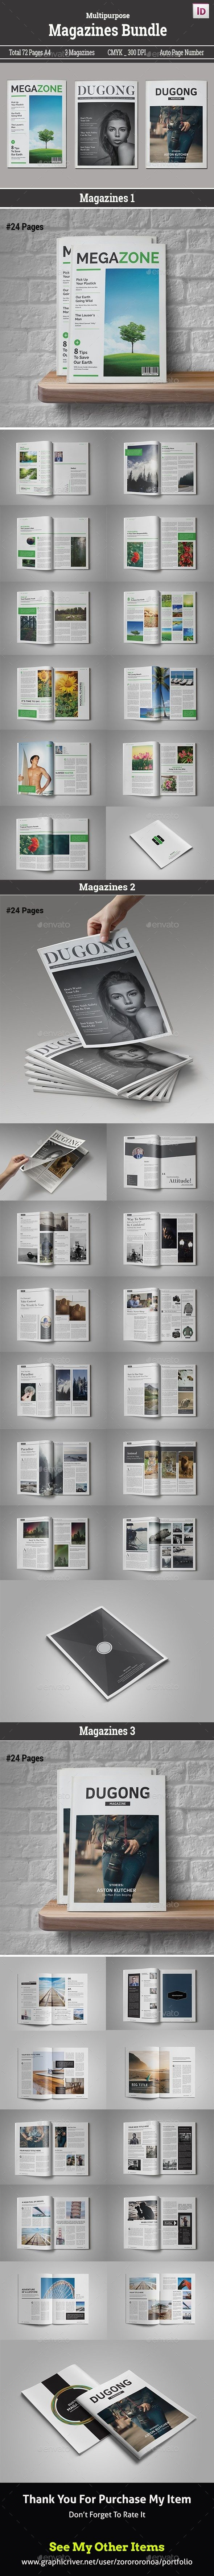 Magazines Bundle Vol.III  — InDesign Template #fashion • Download ➝ https://graphicriver.net/item/magazines-bundle-voliii/18149709?ref=pxcr